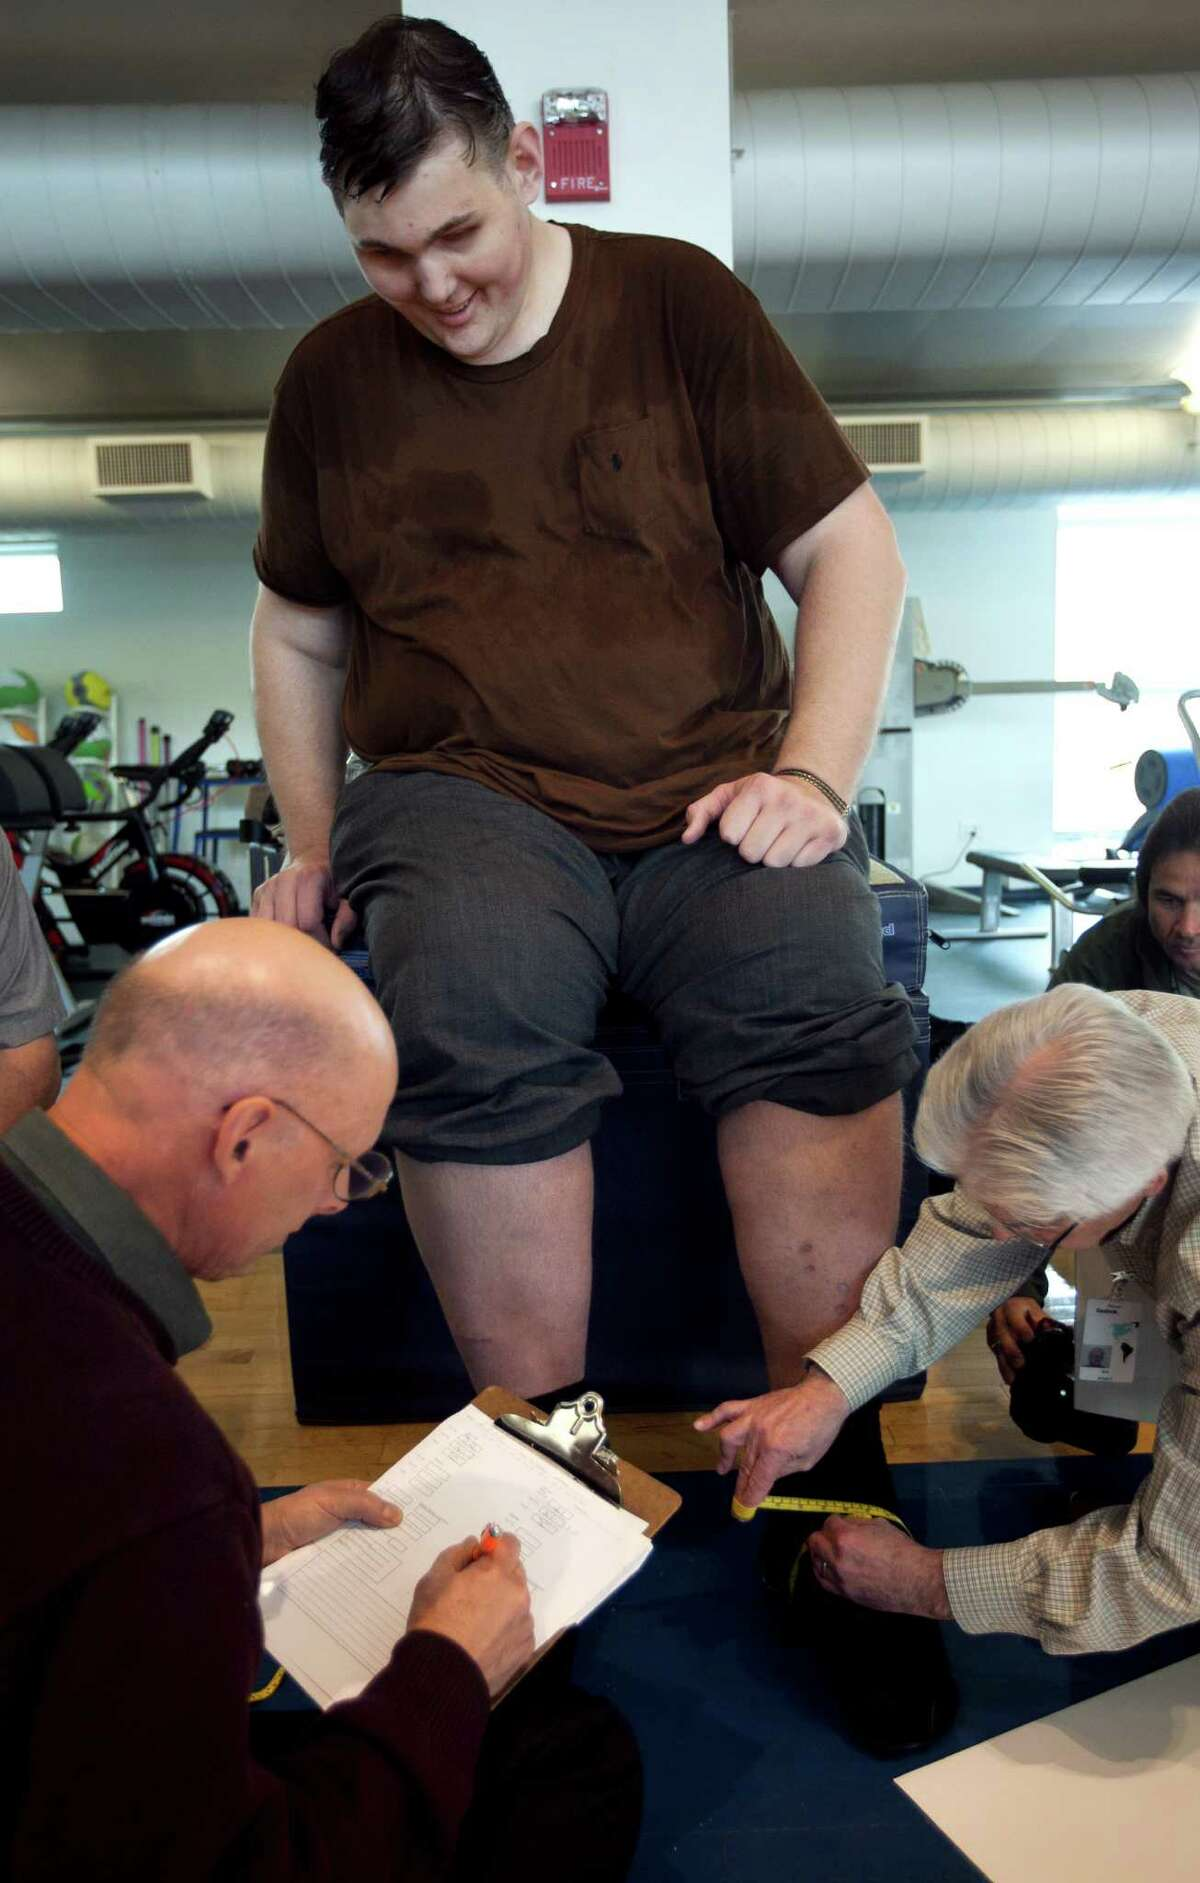 Igor Vovkovinskiy, of Minneapolis, currently the tallest man in the United States at seven feet eight inches, has his feet measured by shoe technicians as part of a shoe fitting at Reebok headquarters, in Canton, Mass., Thursday, May 3, 2012. Vovkovinskiy, who has a shoe size between 22 and 26, says he's had 16 surgeries in six years to fix problems created by shoes that didn't fit. Reebok is providing the shoes at no charge. (AP Photo/Steven Senne)